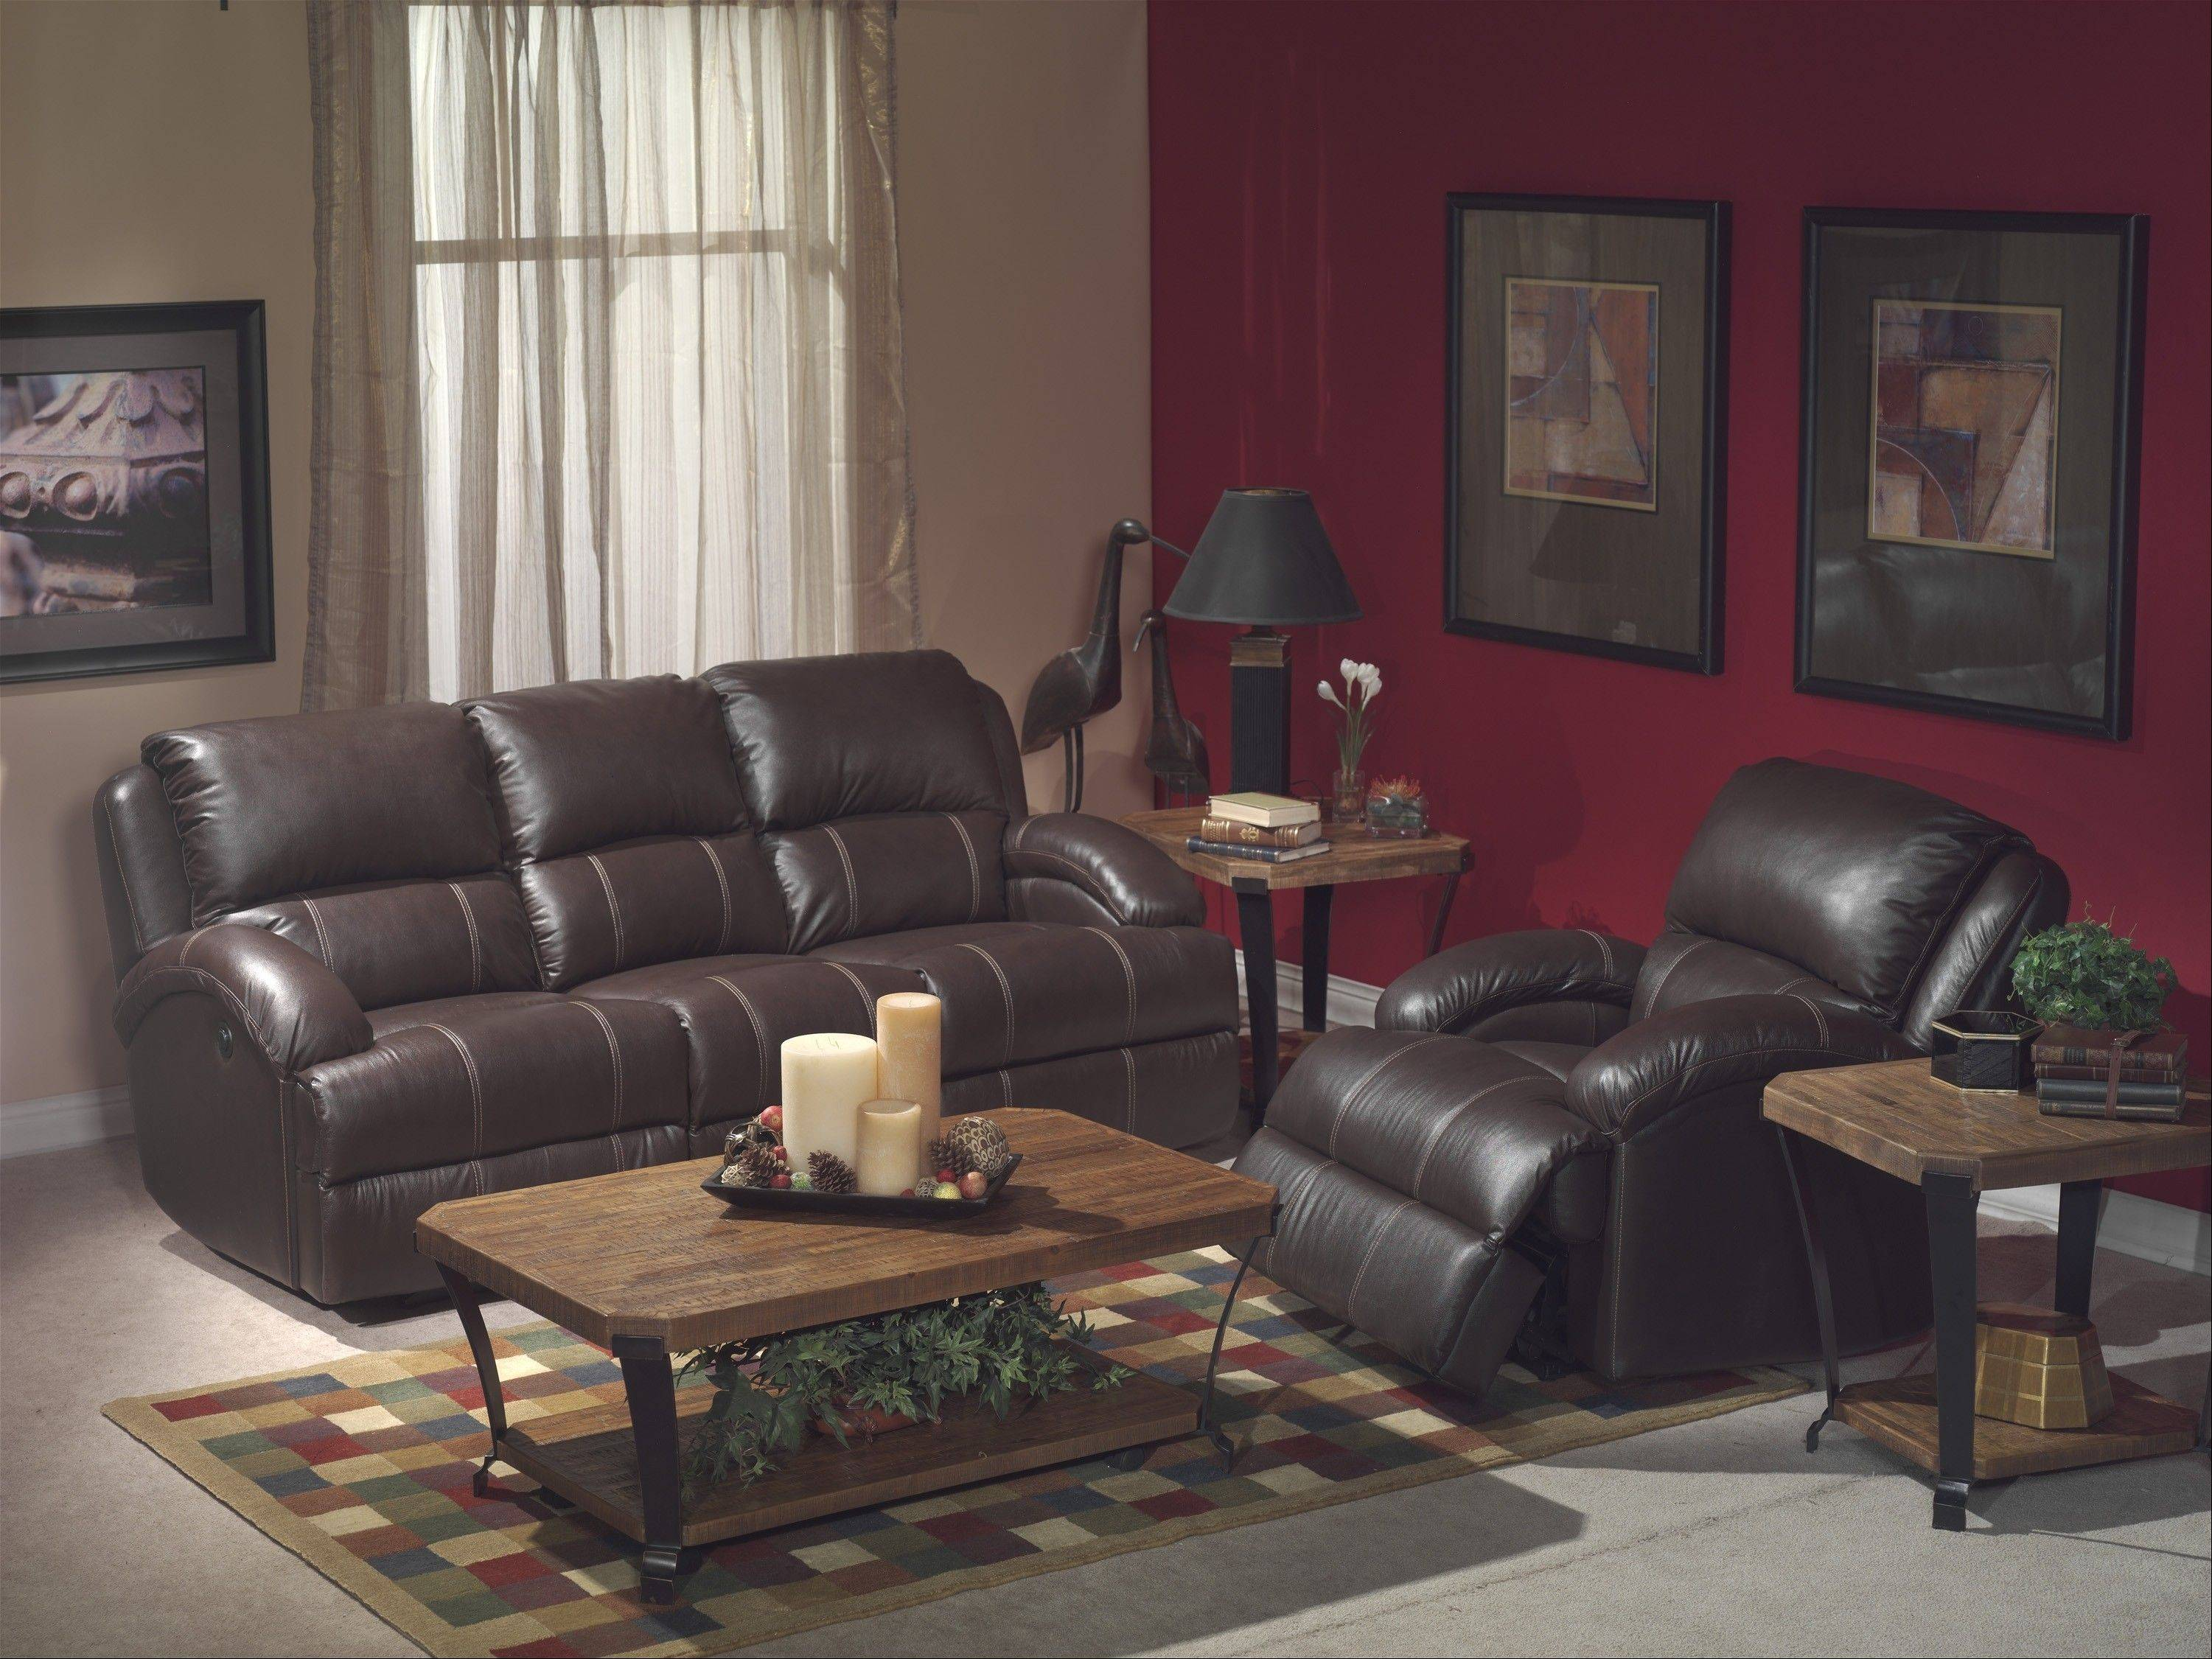 Leather recliners are still a popular choice for family rooms.